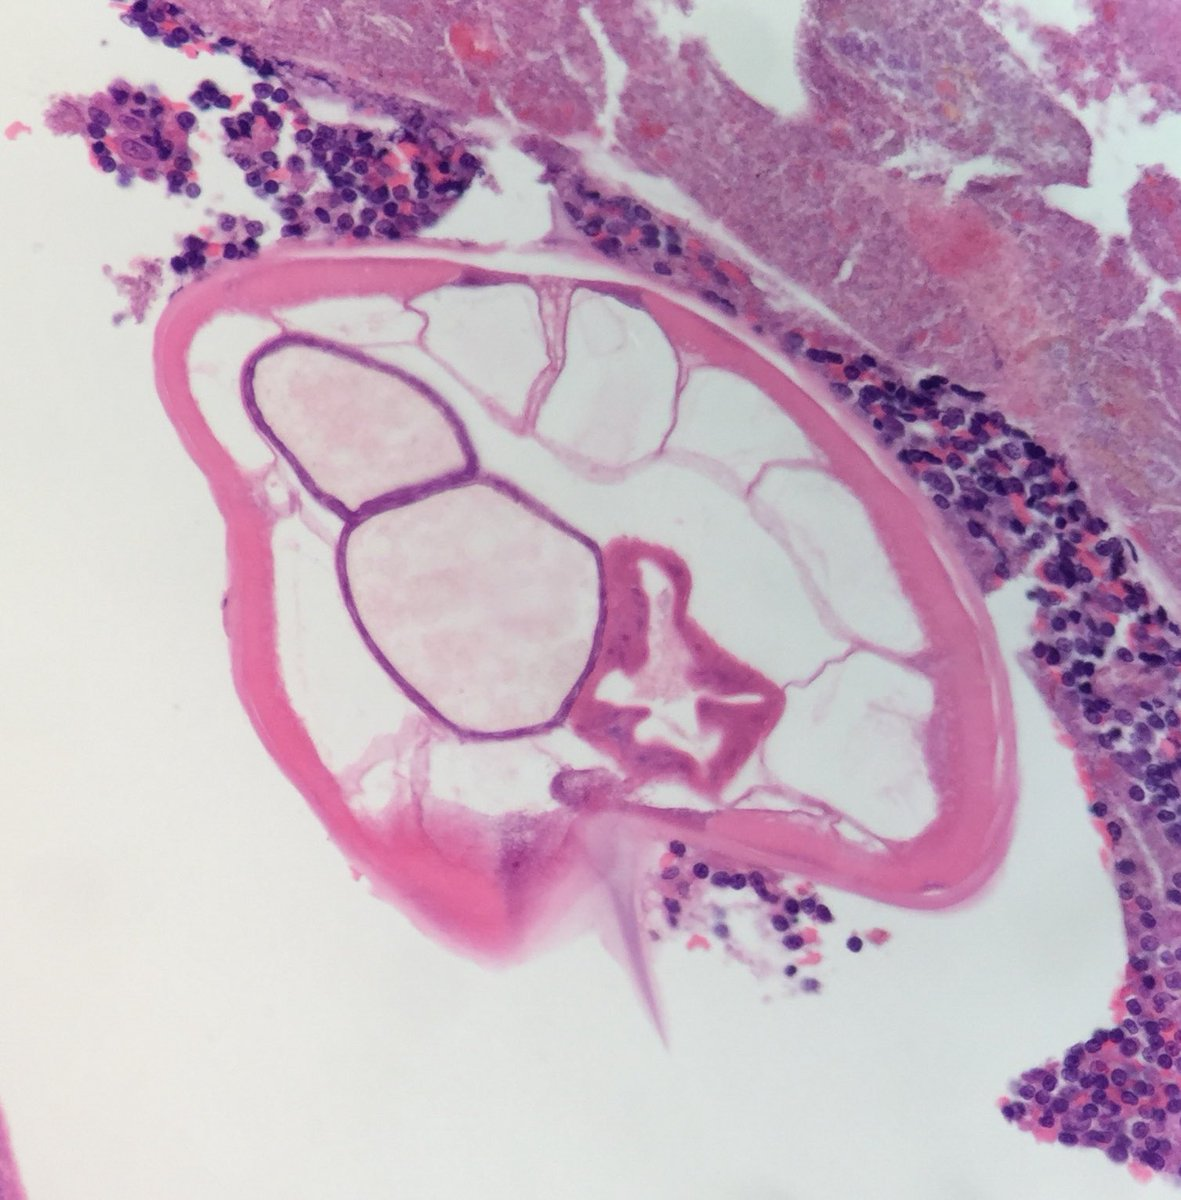 enterobius vermicularis histology)